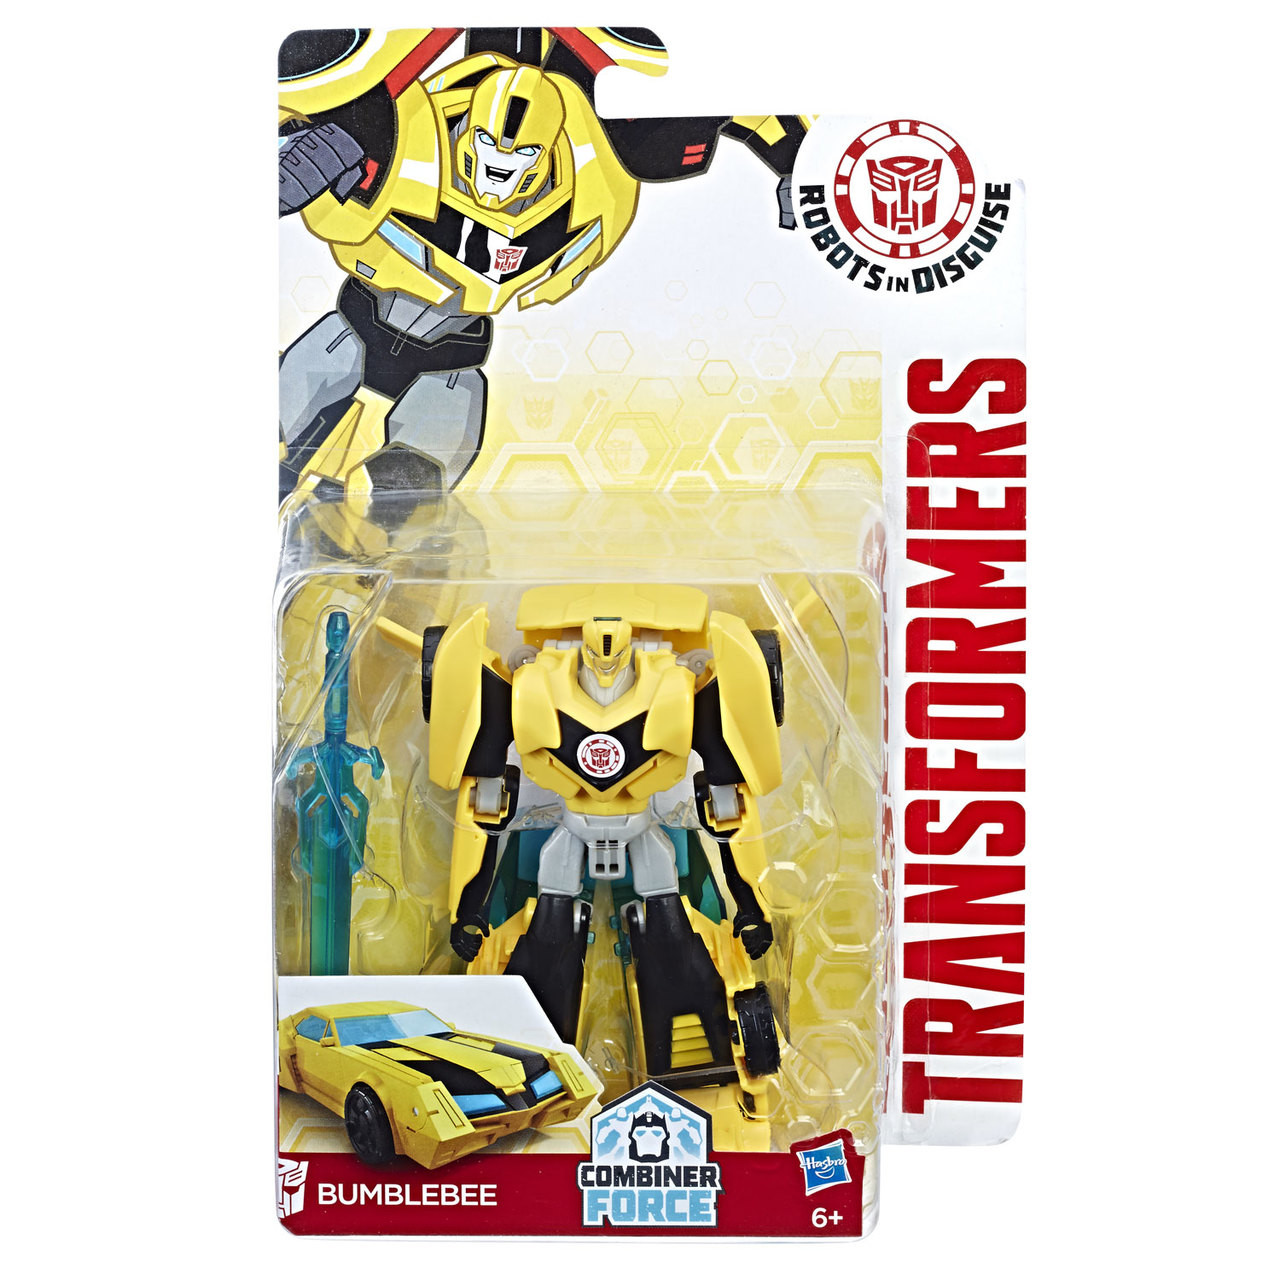 Transformers Robots In Disguise toys Bumblebee Warrior Class Hasbro